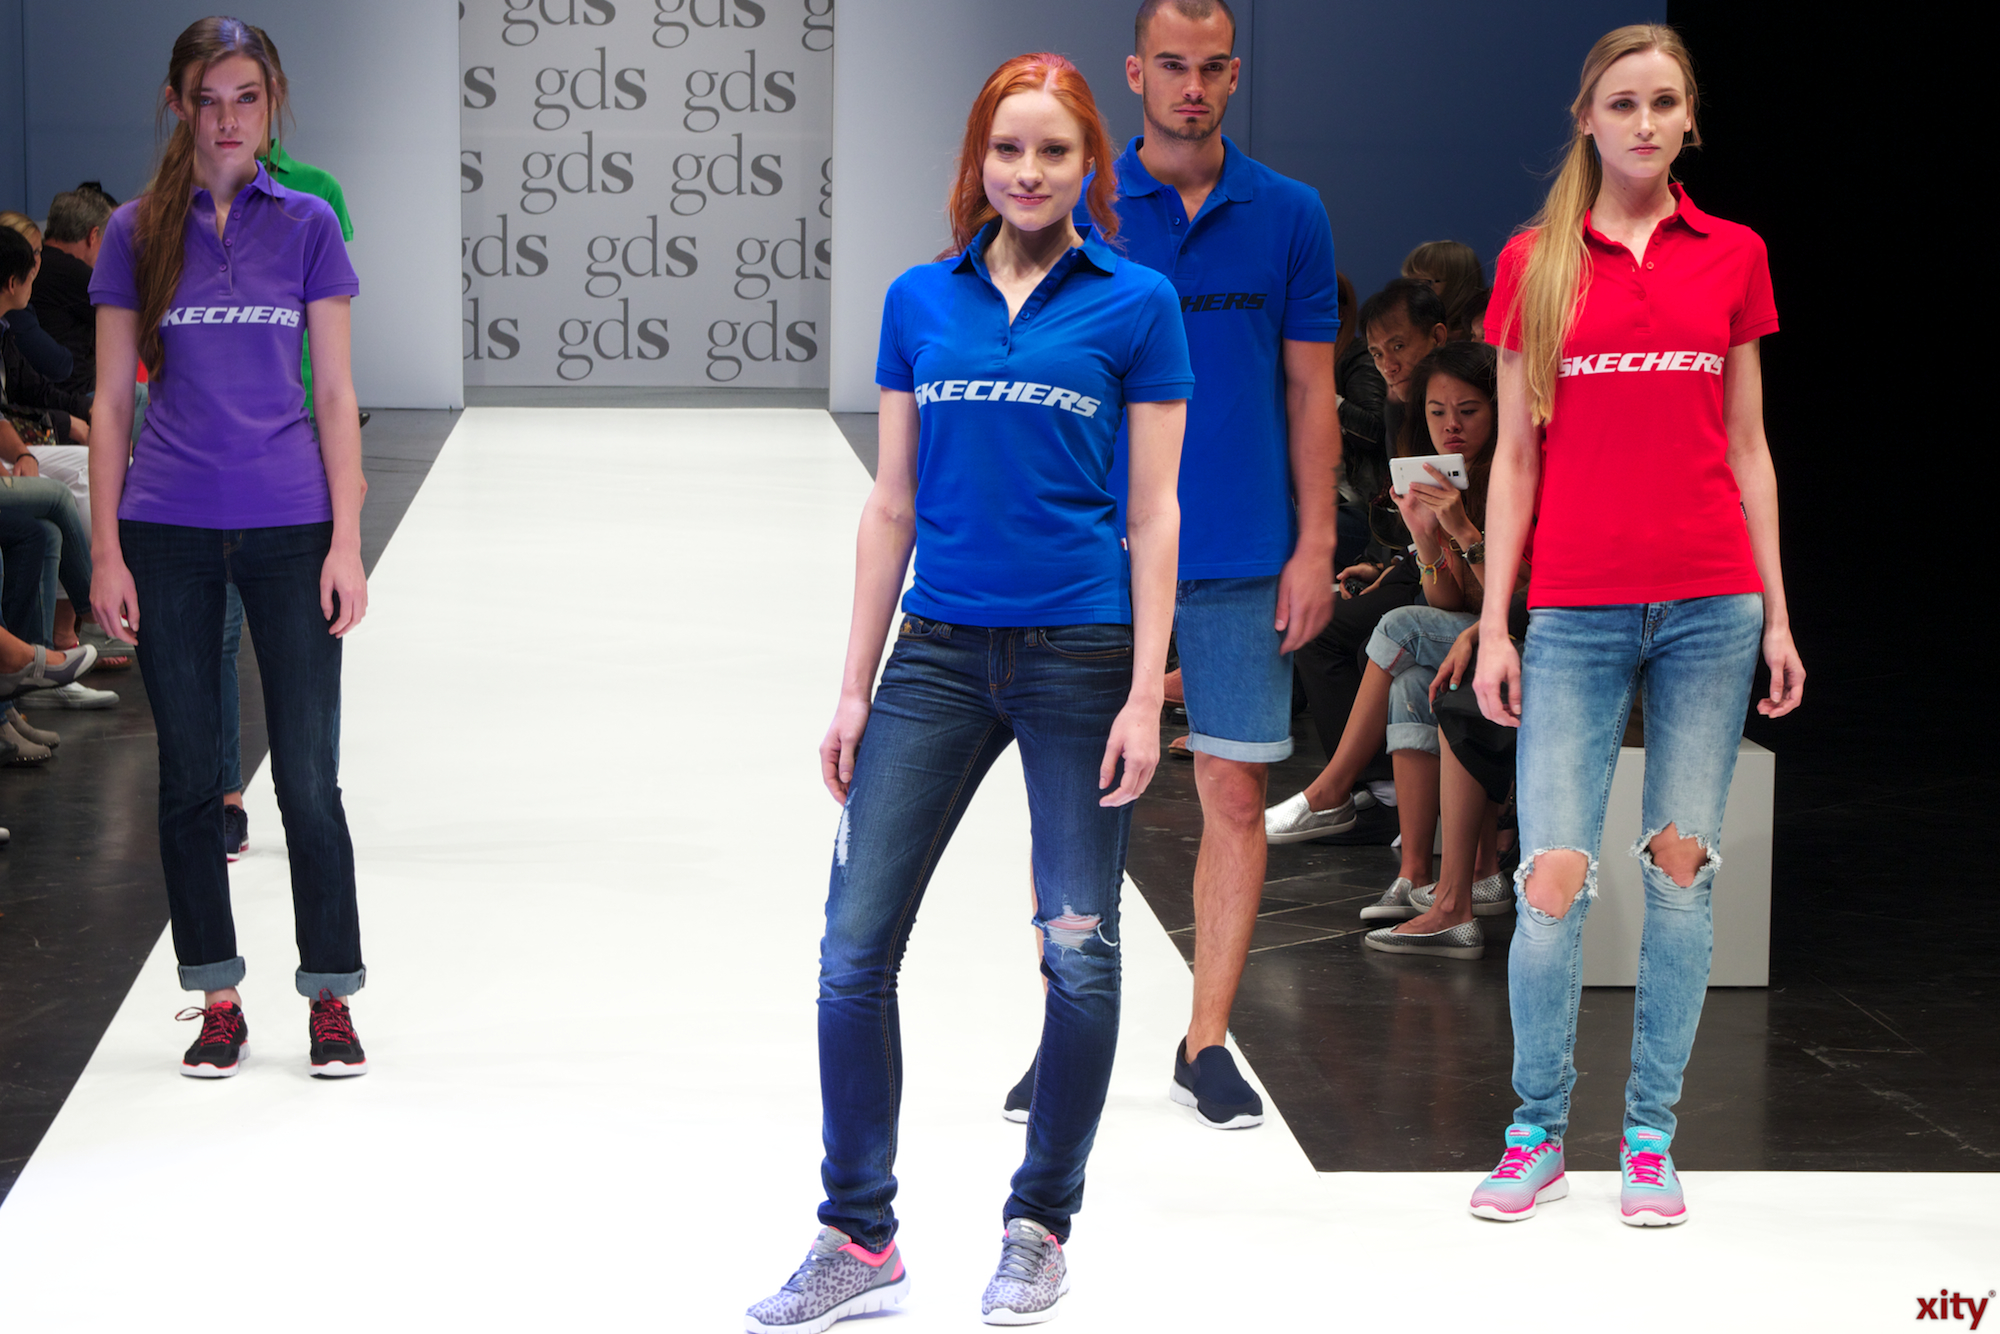 Barbara Meier ran at the GDS on the catwalk for SKECHERS (Photo: xity)